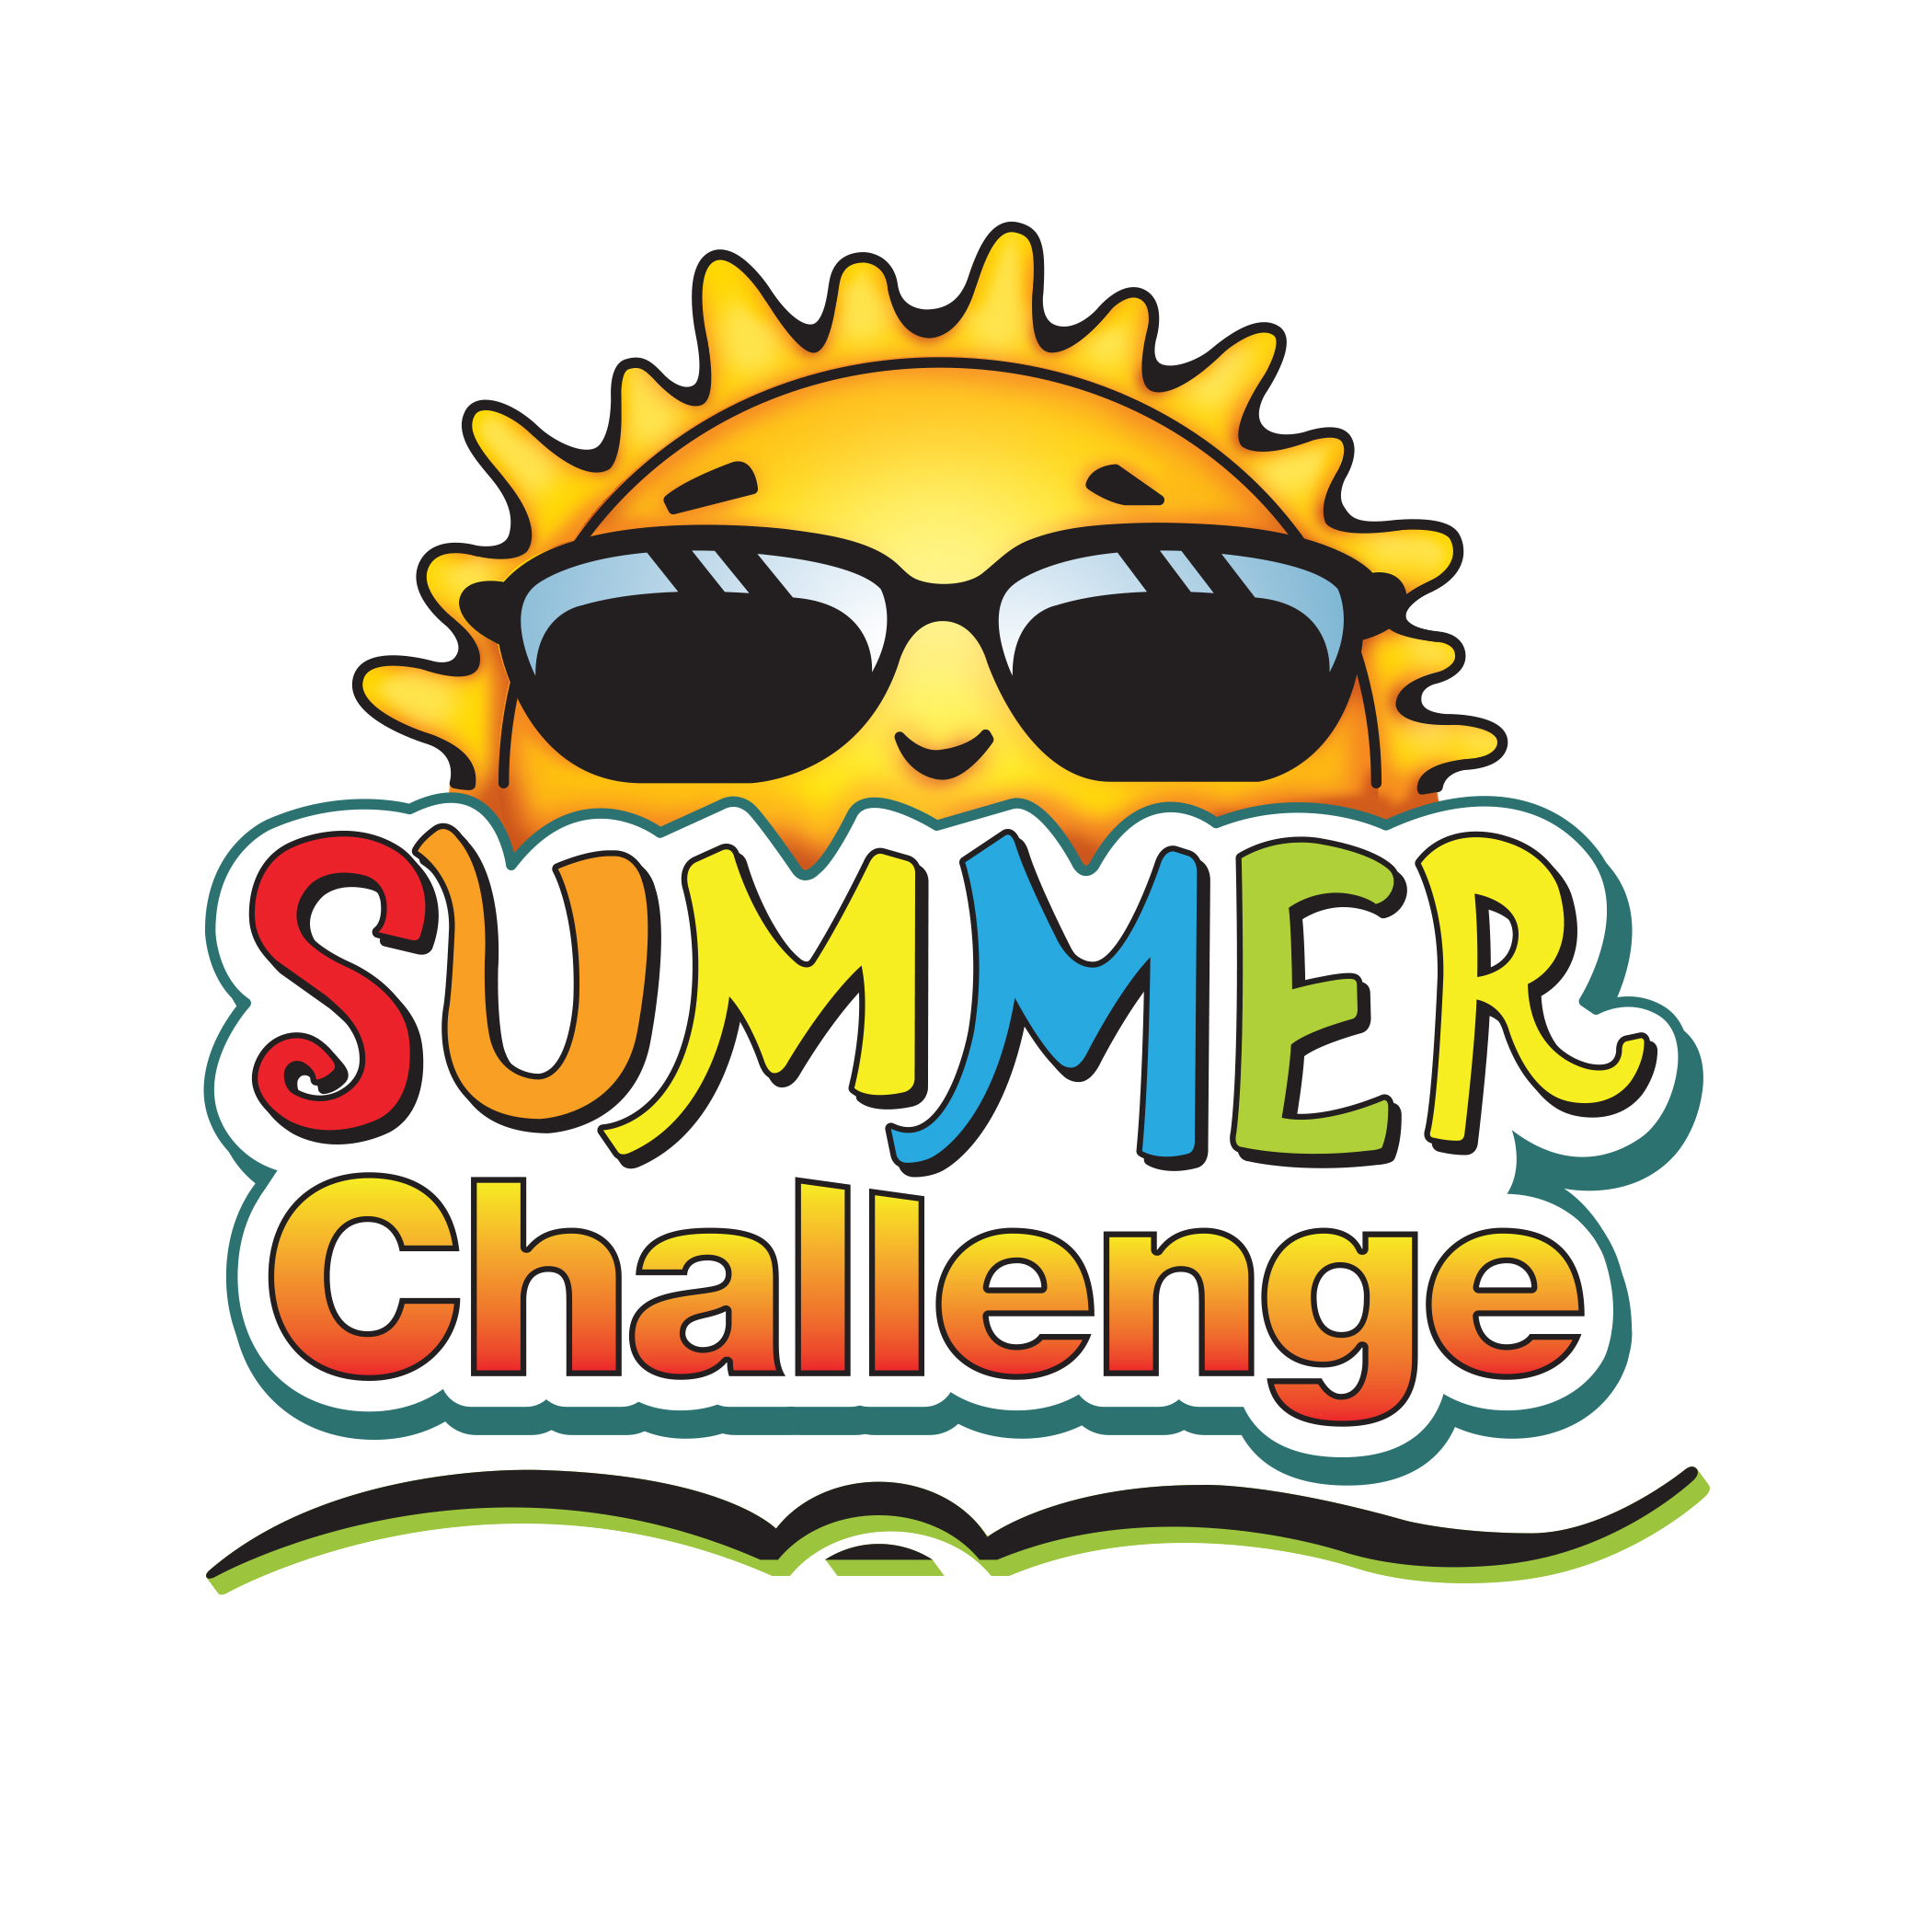 Library Summer Challenge Keeps Kids And Families Learning